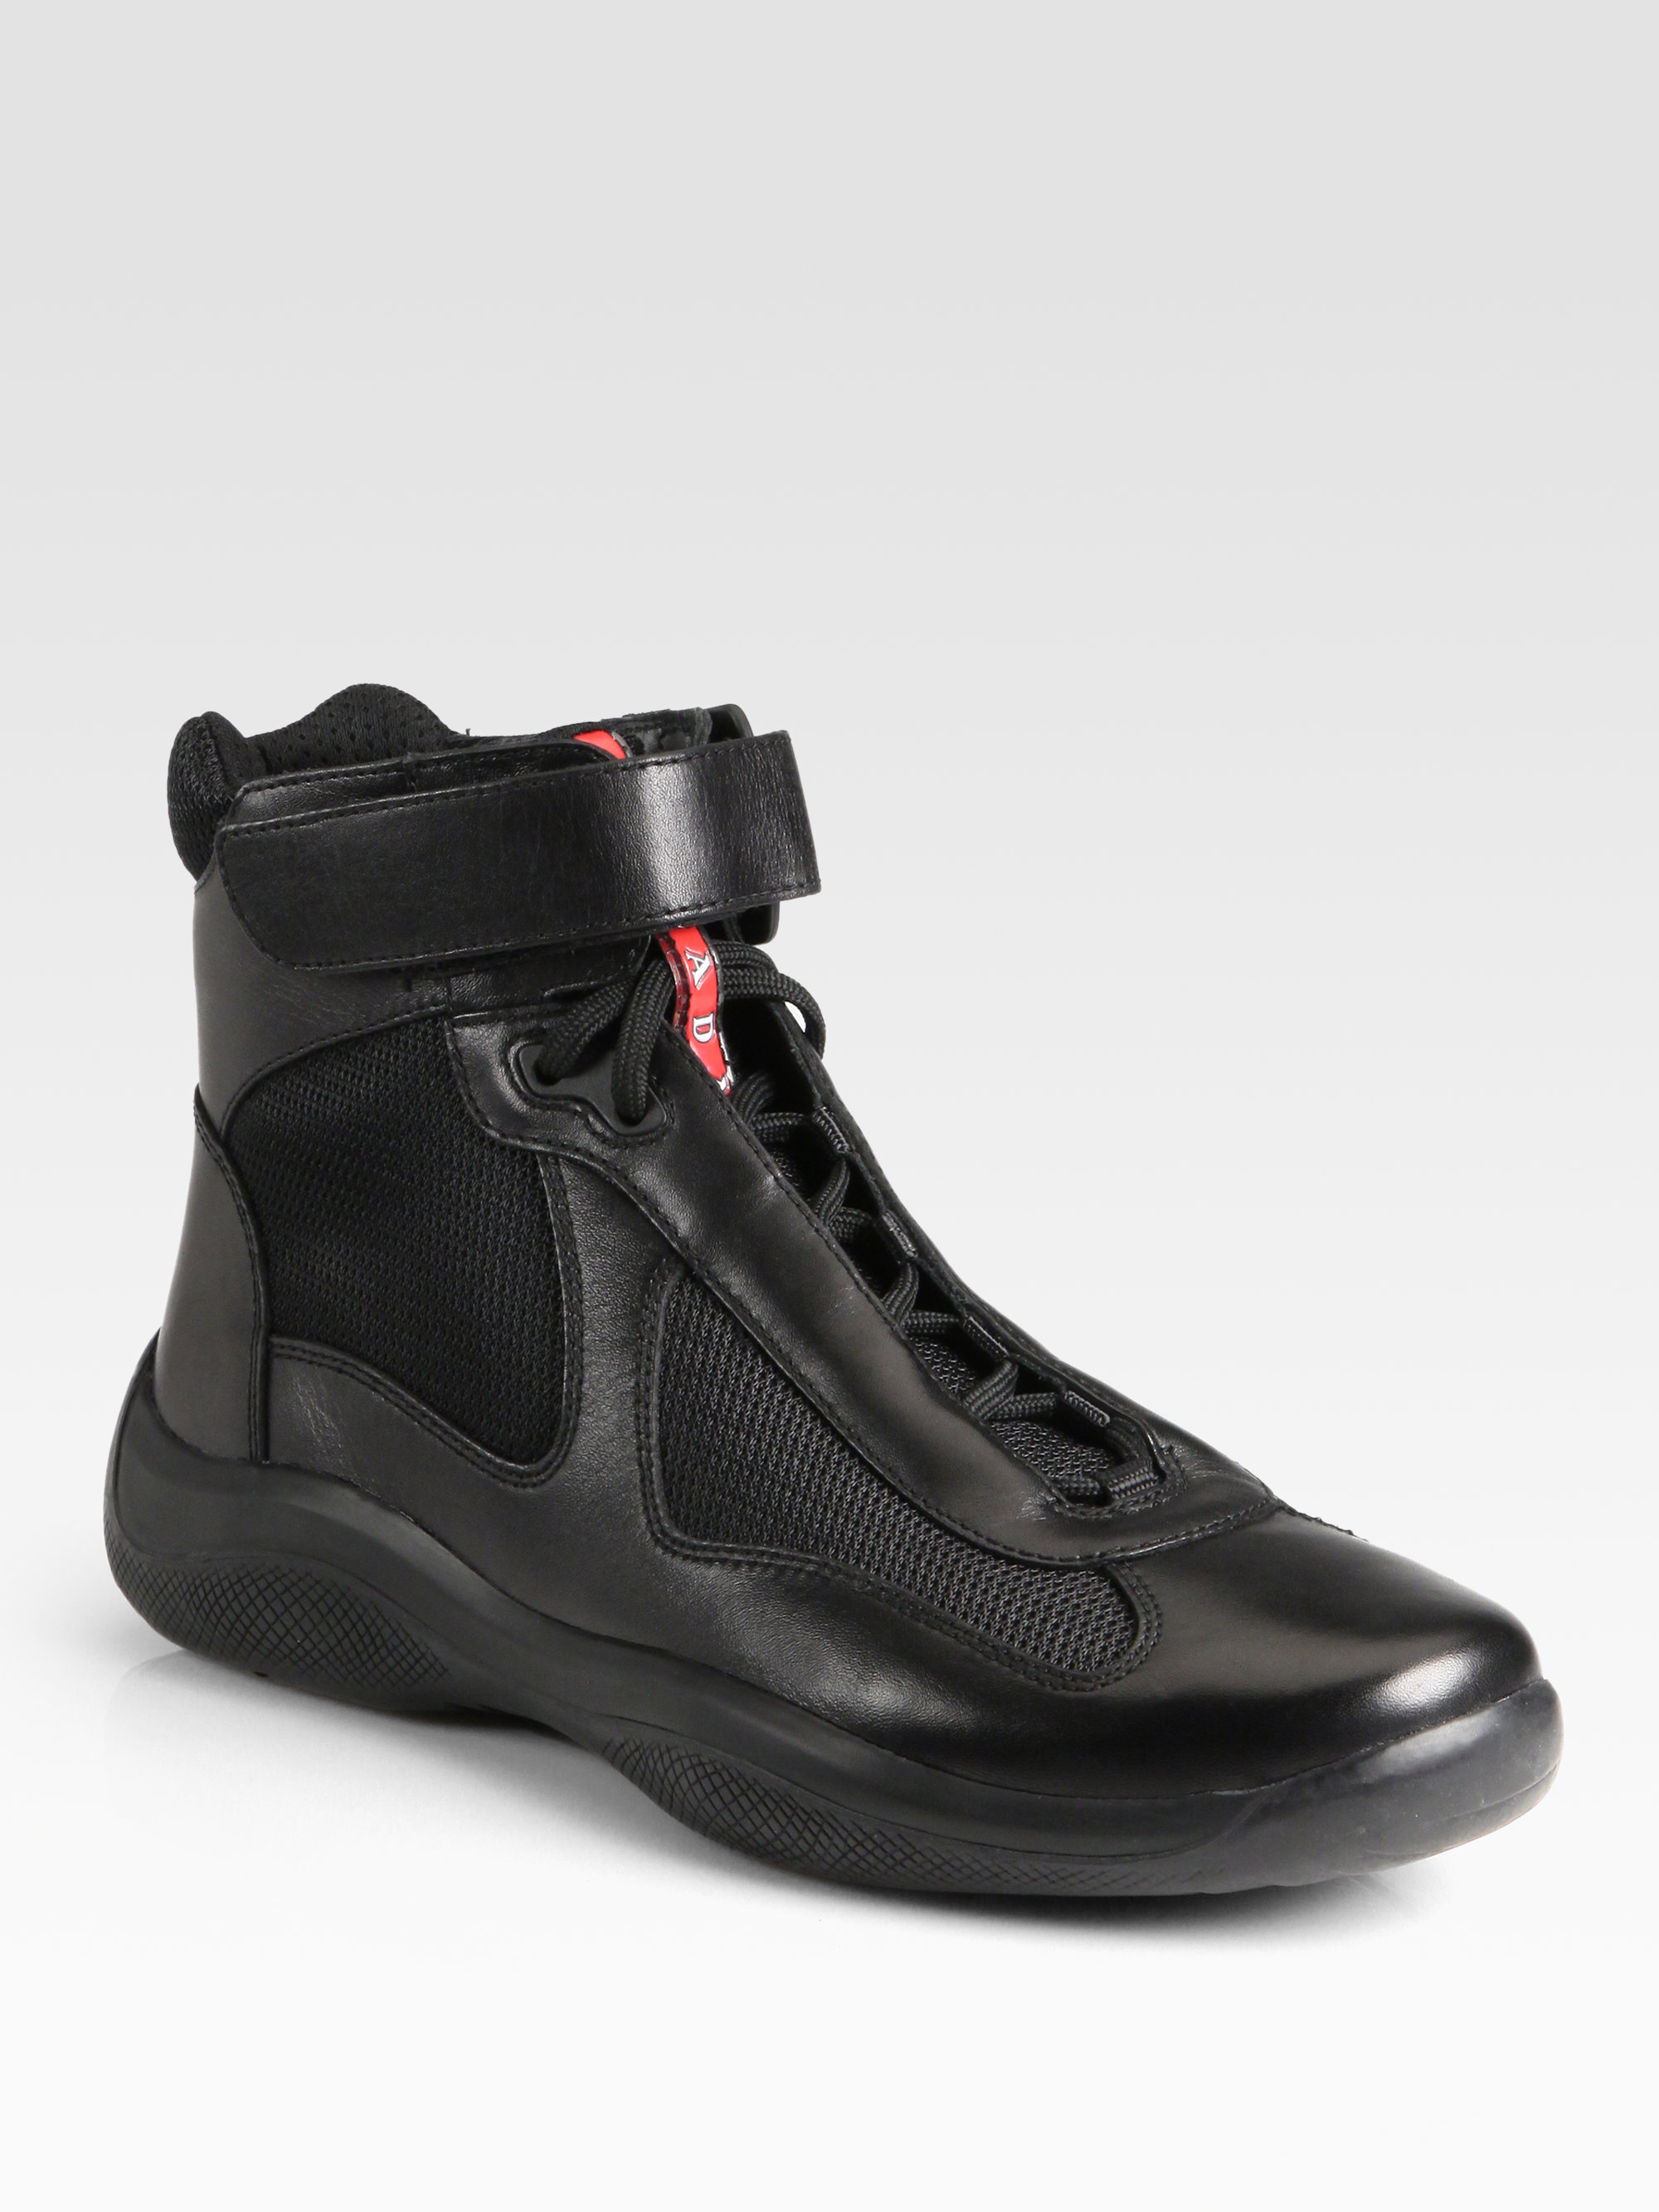 1387c6629cc2 ... order lyst prada sneakers avenue ankle boots silver inserts in black  10c1a 3025c